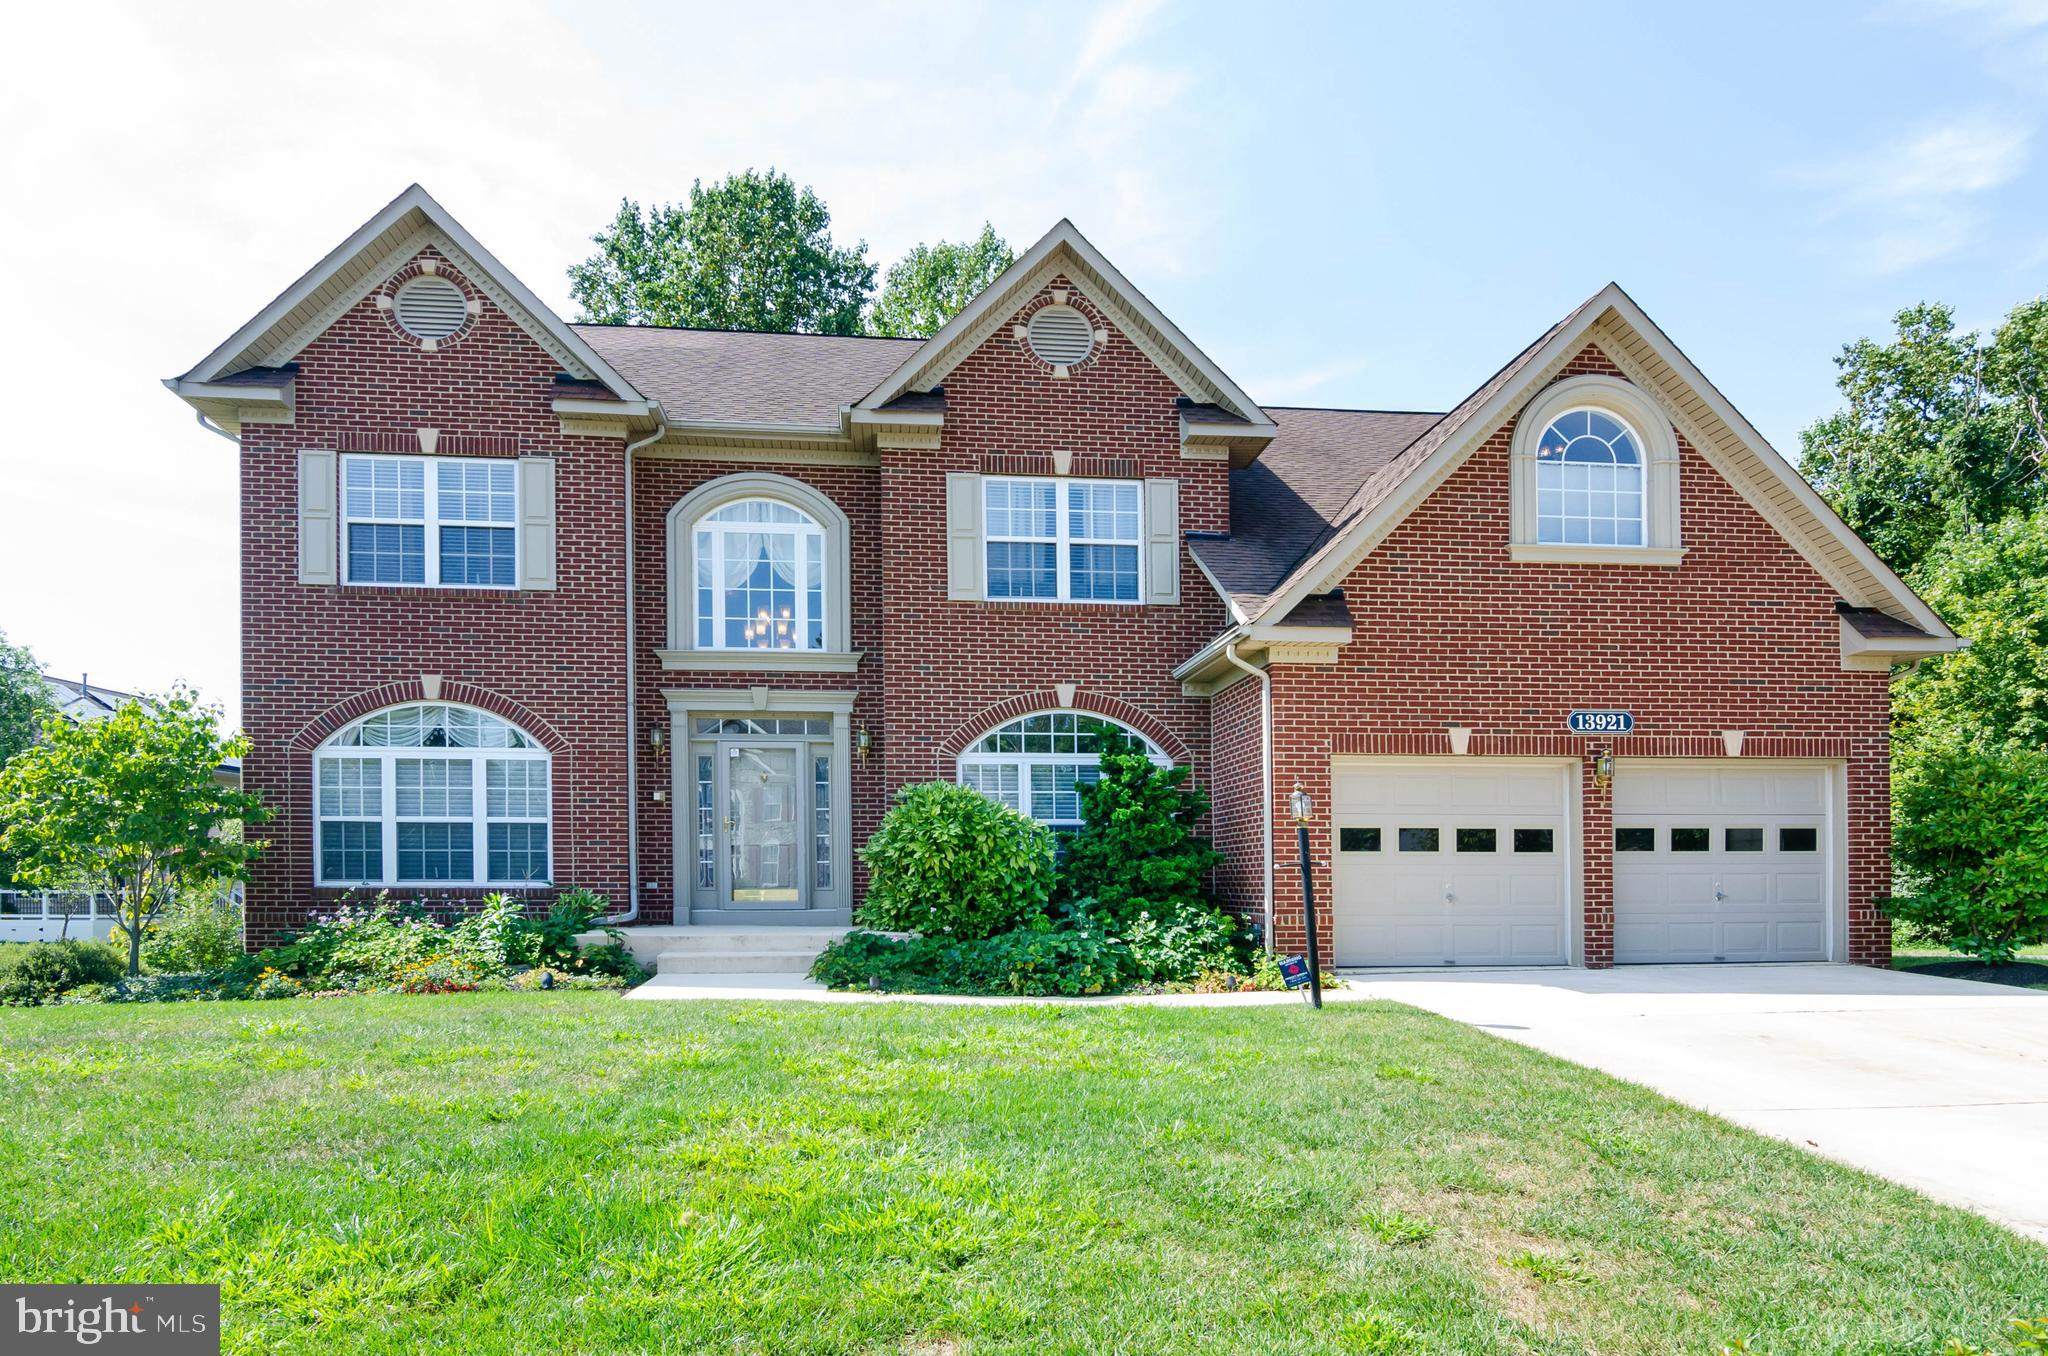 13921 LAKE MEADOWS DRIVE, BOWIE, MD 20720